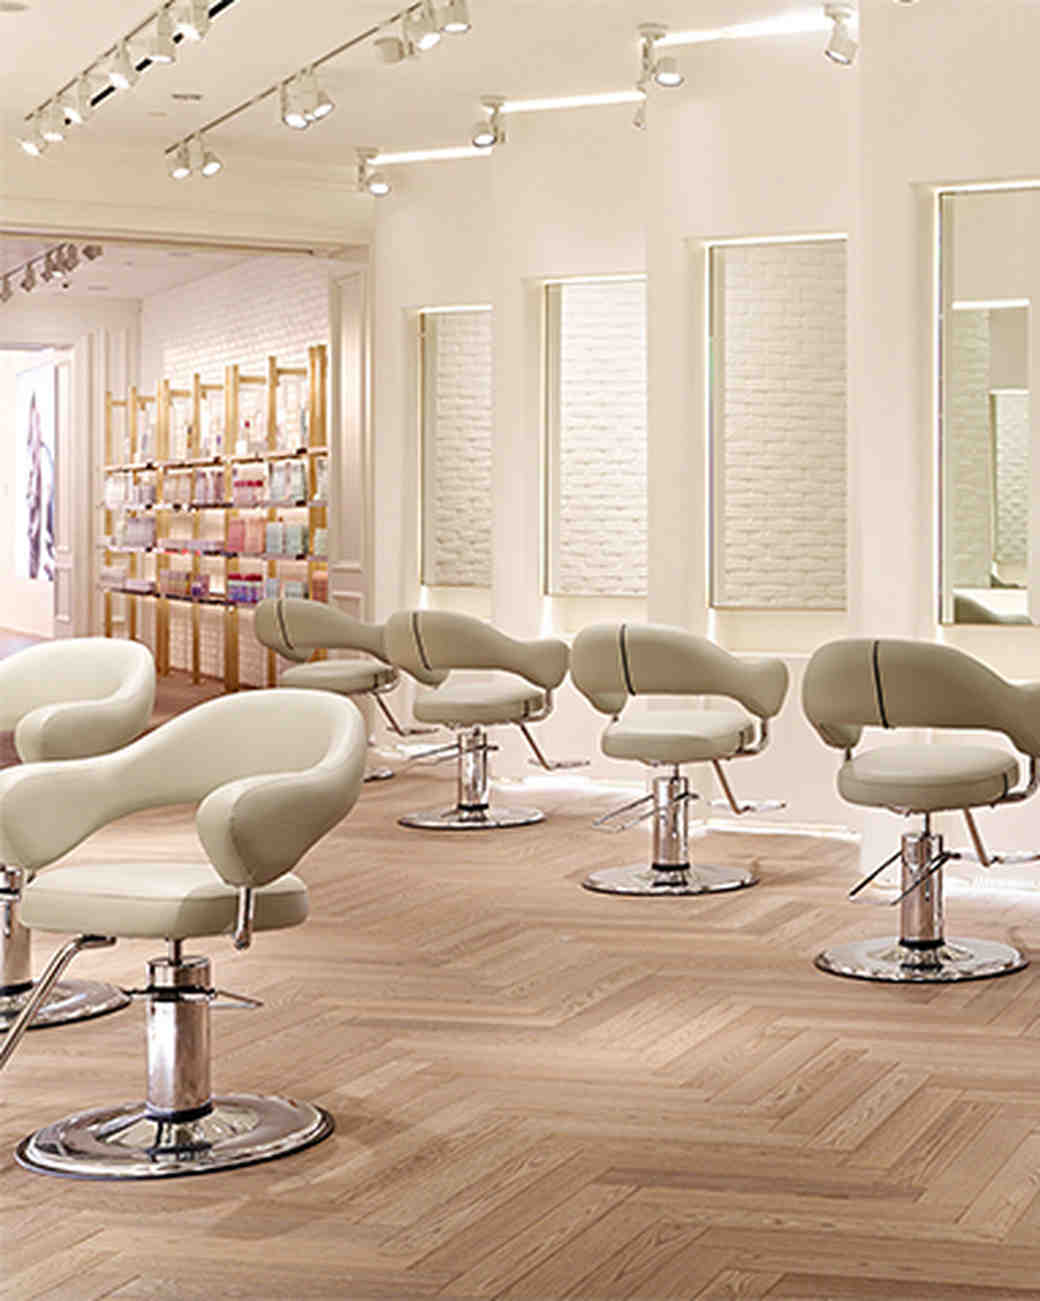 nyc-beauty-bachelorette-nexxus-salon-1115.jpg